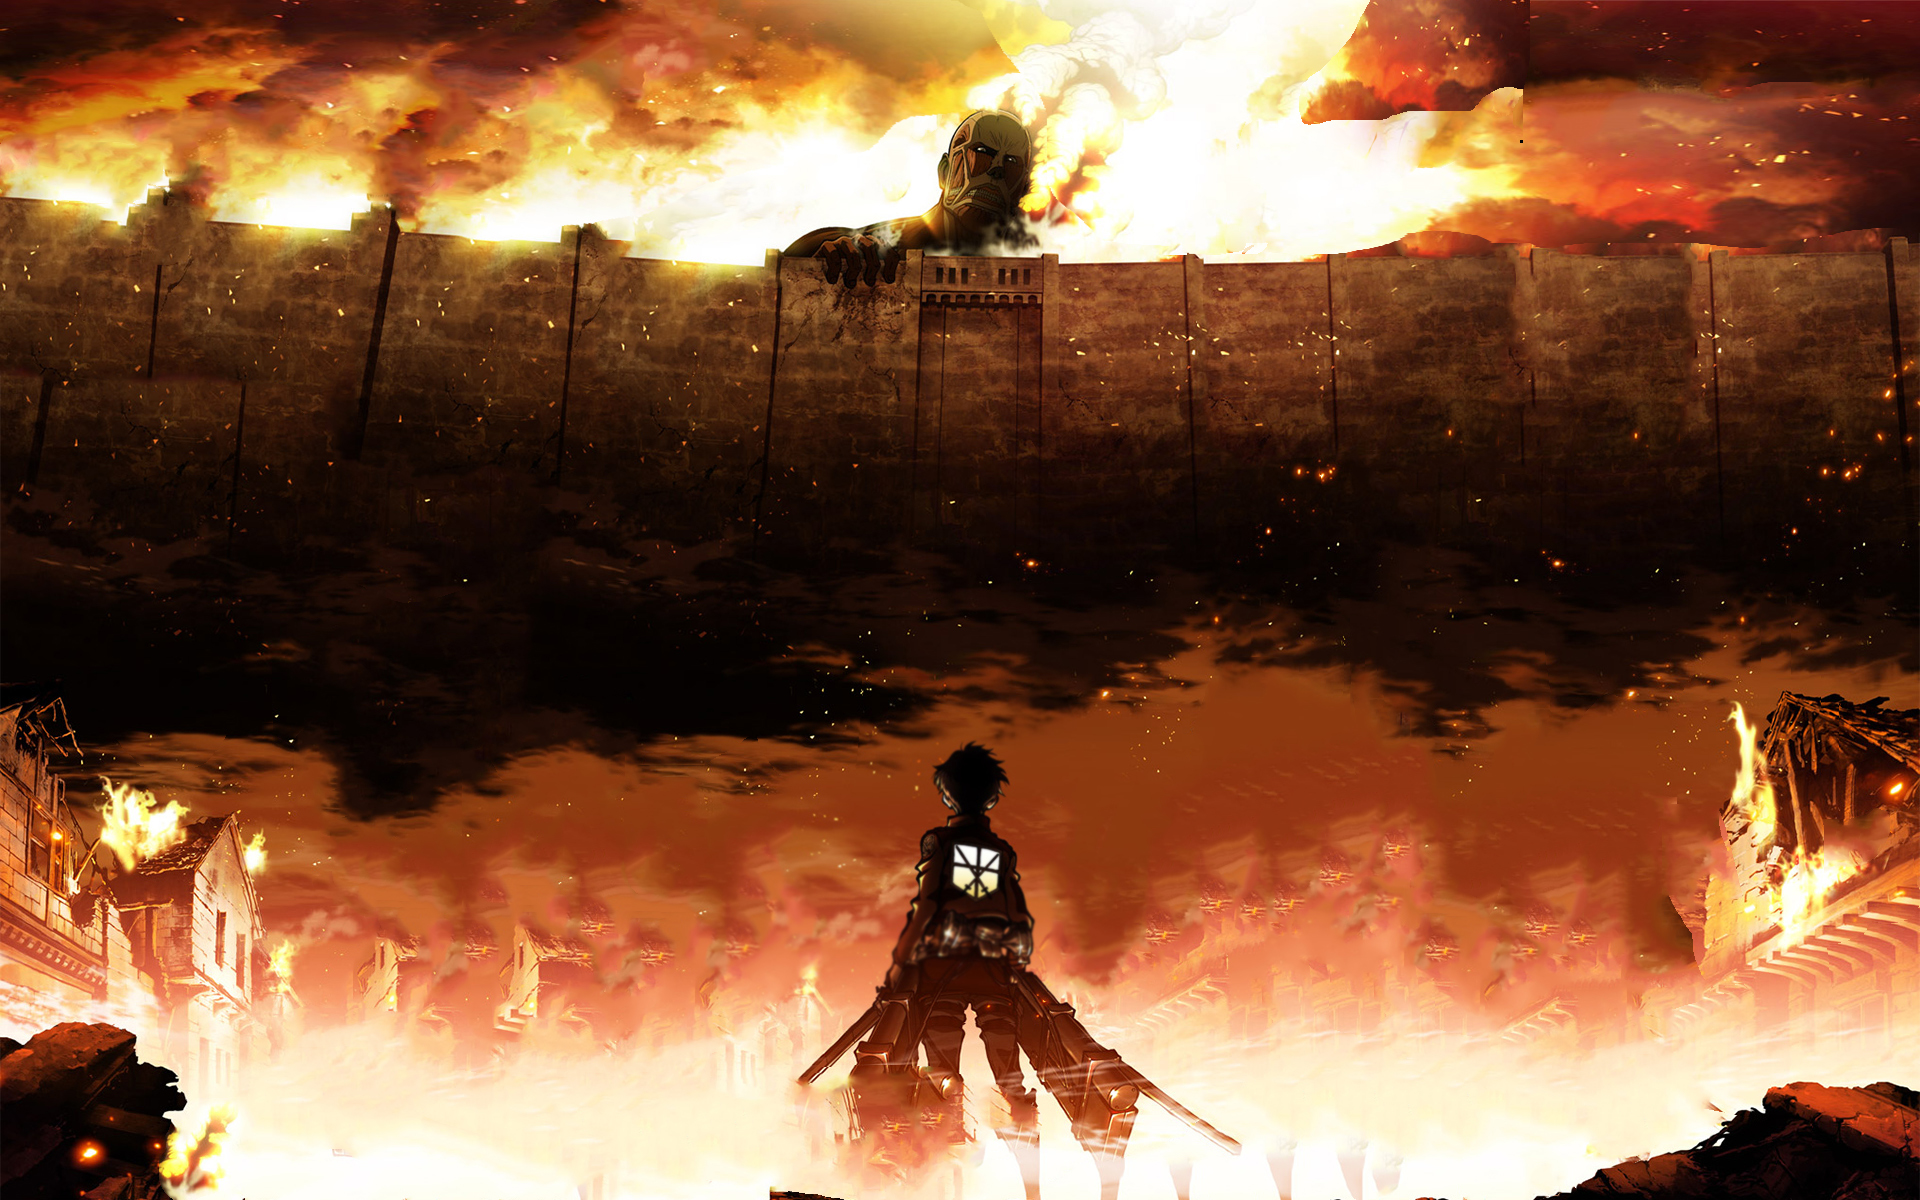 HD Wallpaper Attack On Titan Eren Jaeger Shingeki No Kyojin